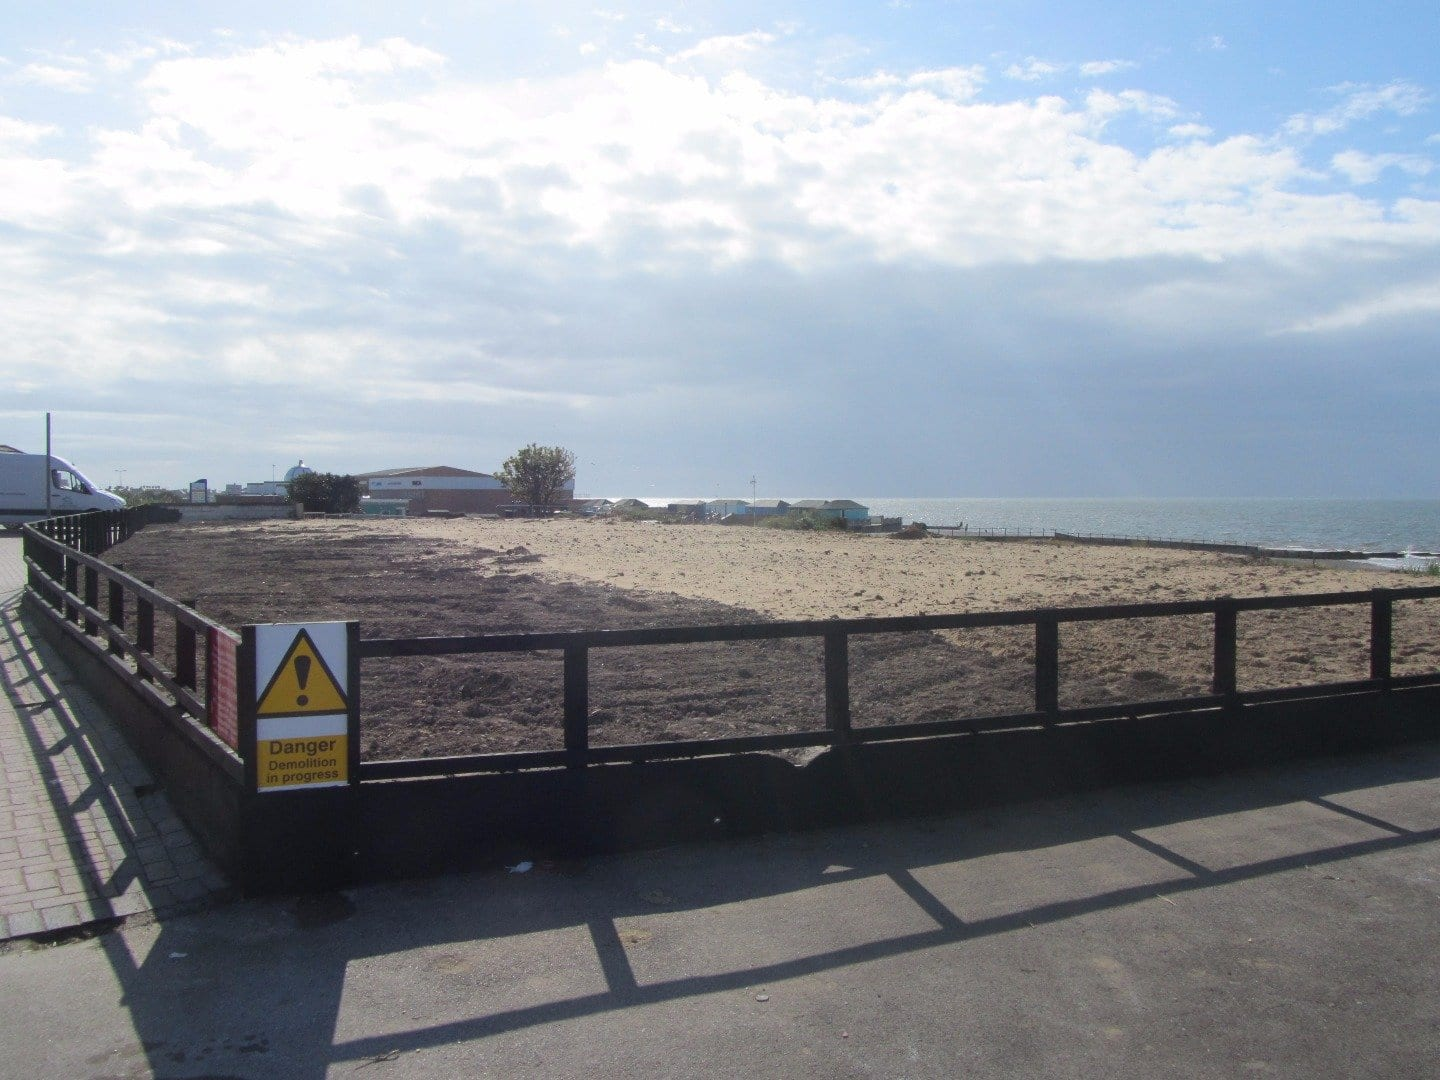 Fleetwood Pier site, May 2013 after the site had been cleaned up.